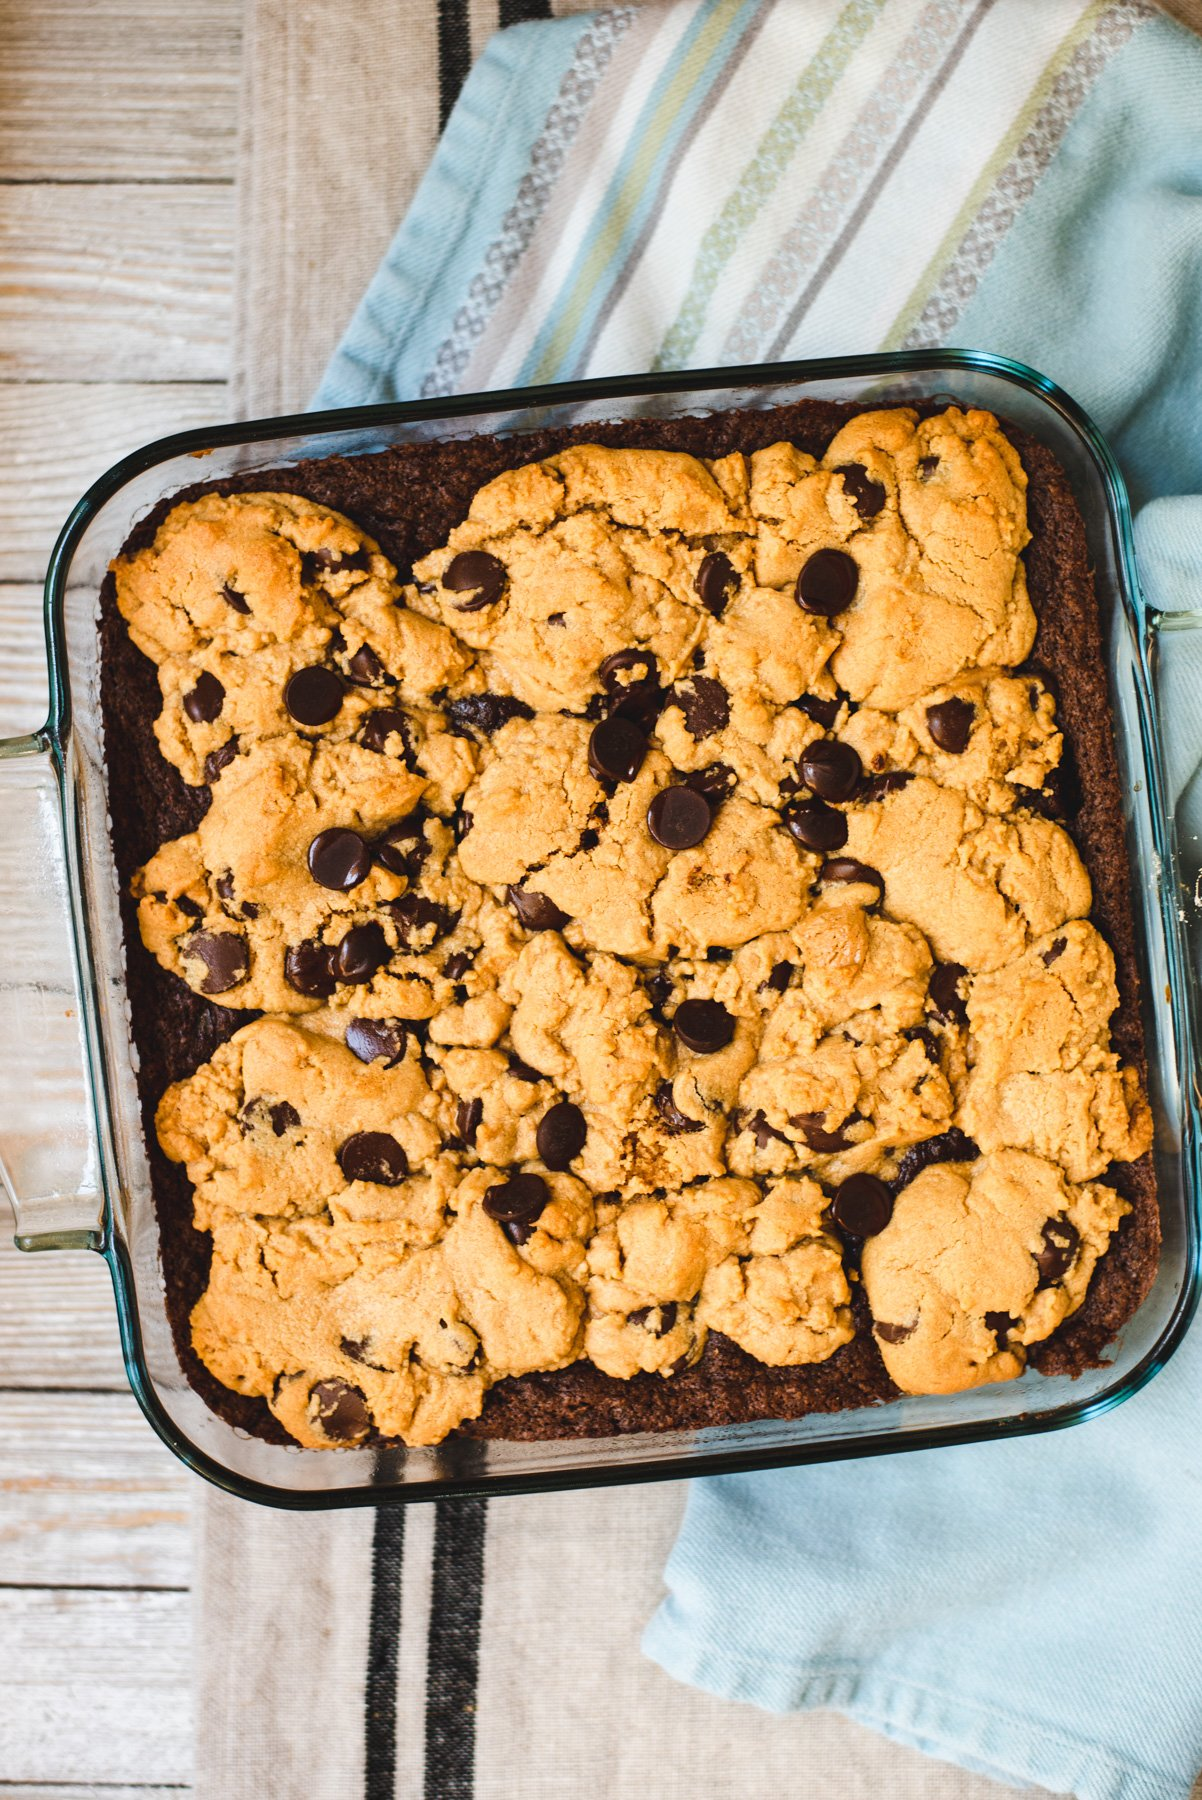 Glass pan filled with baked peanut butter brookies